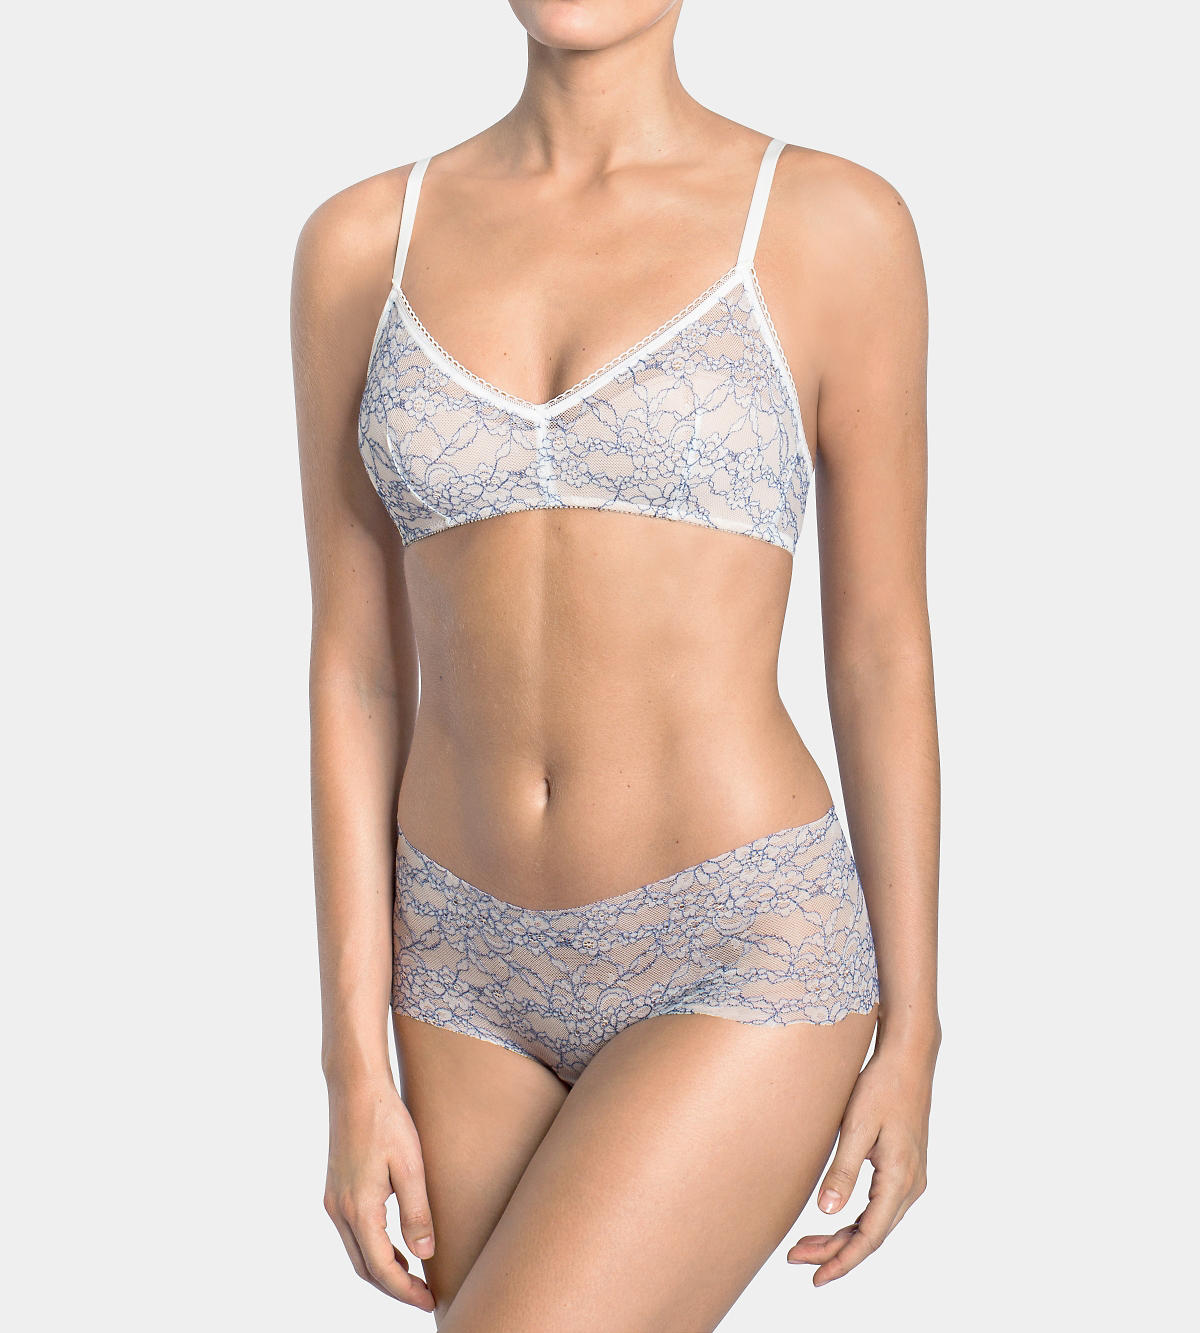 SLOGGI LIGHT LACE 2.0